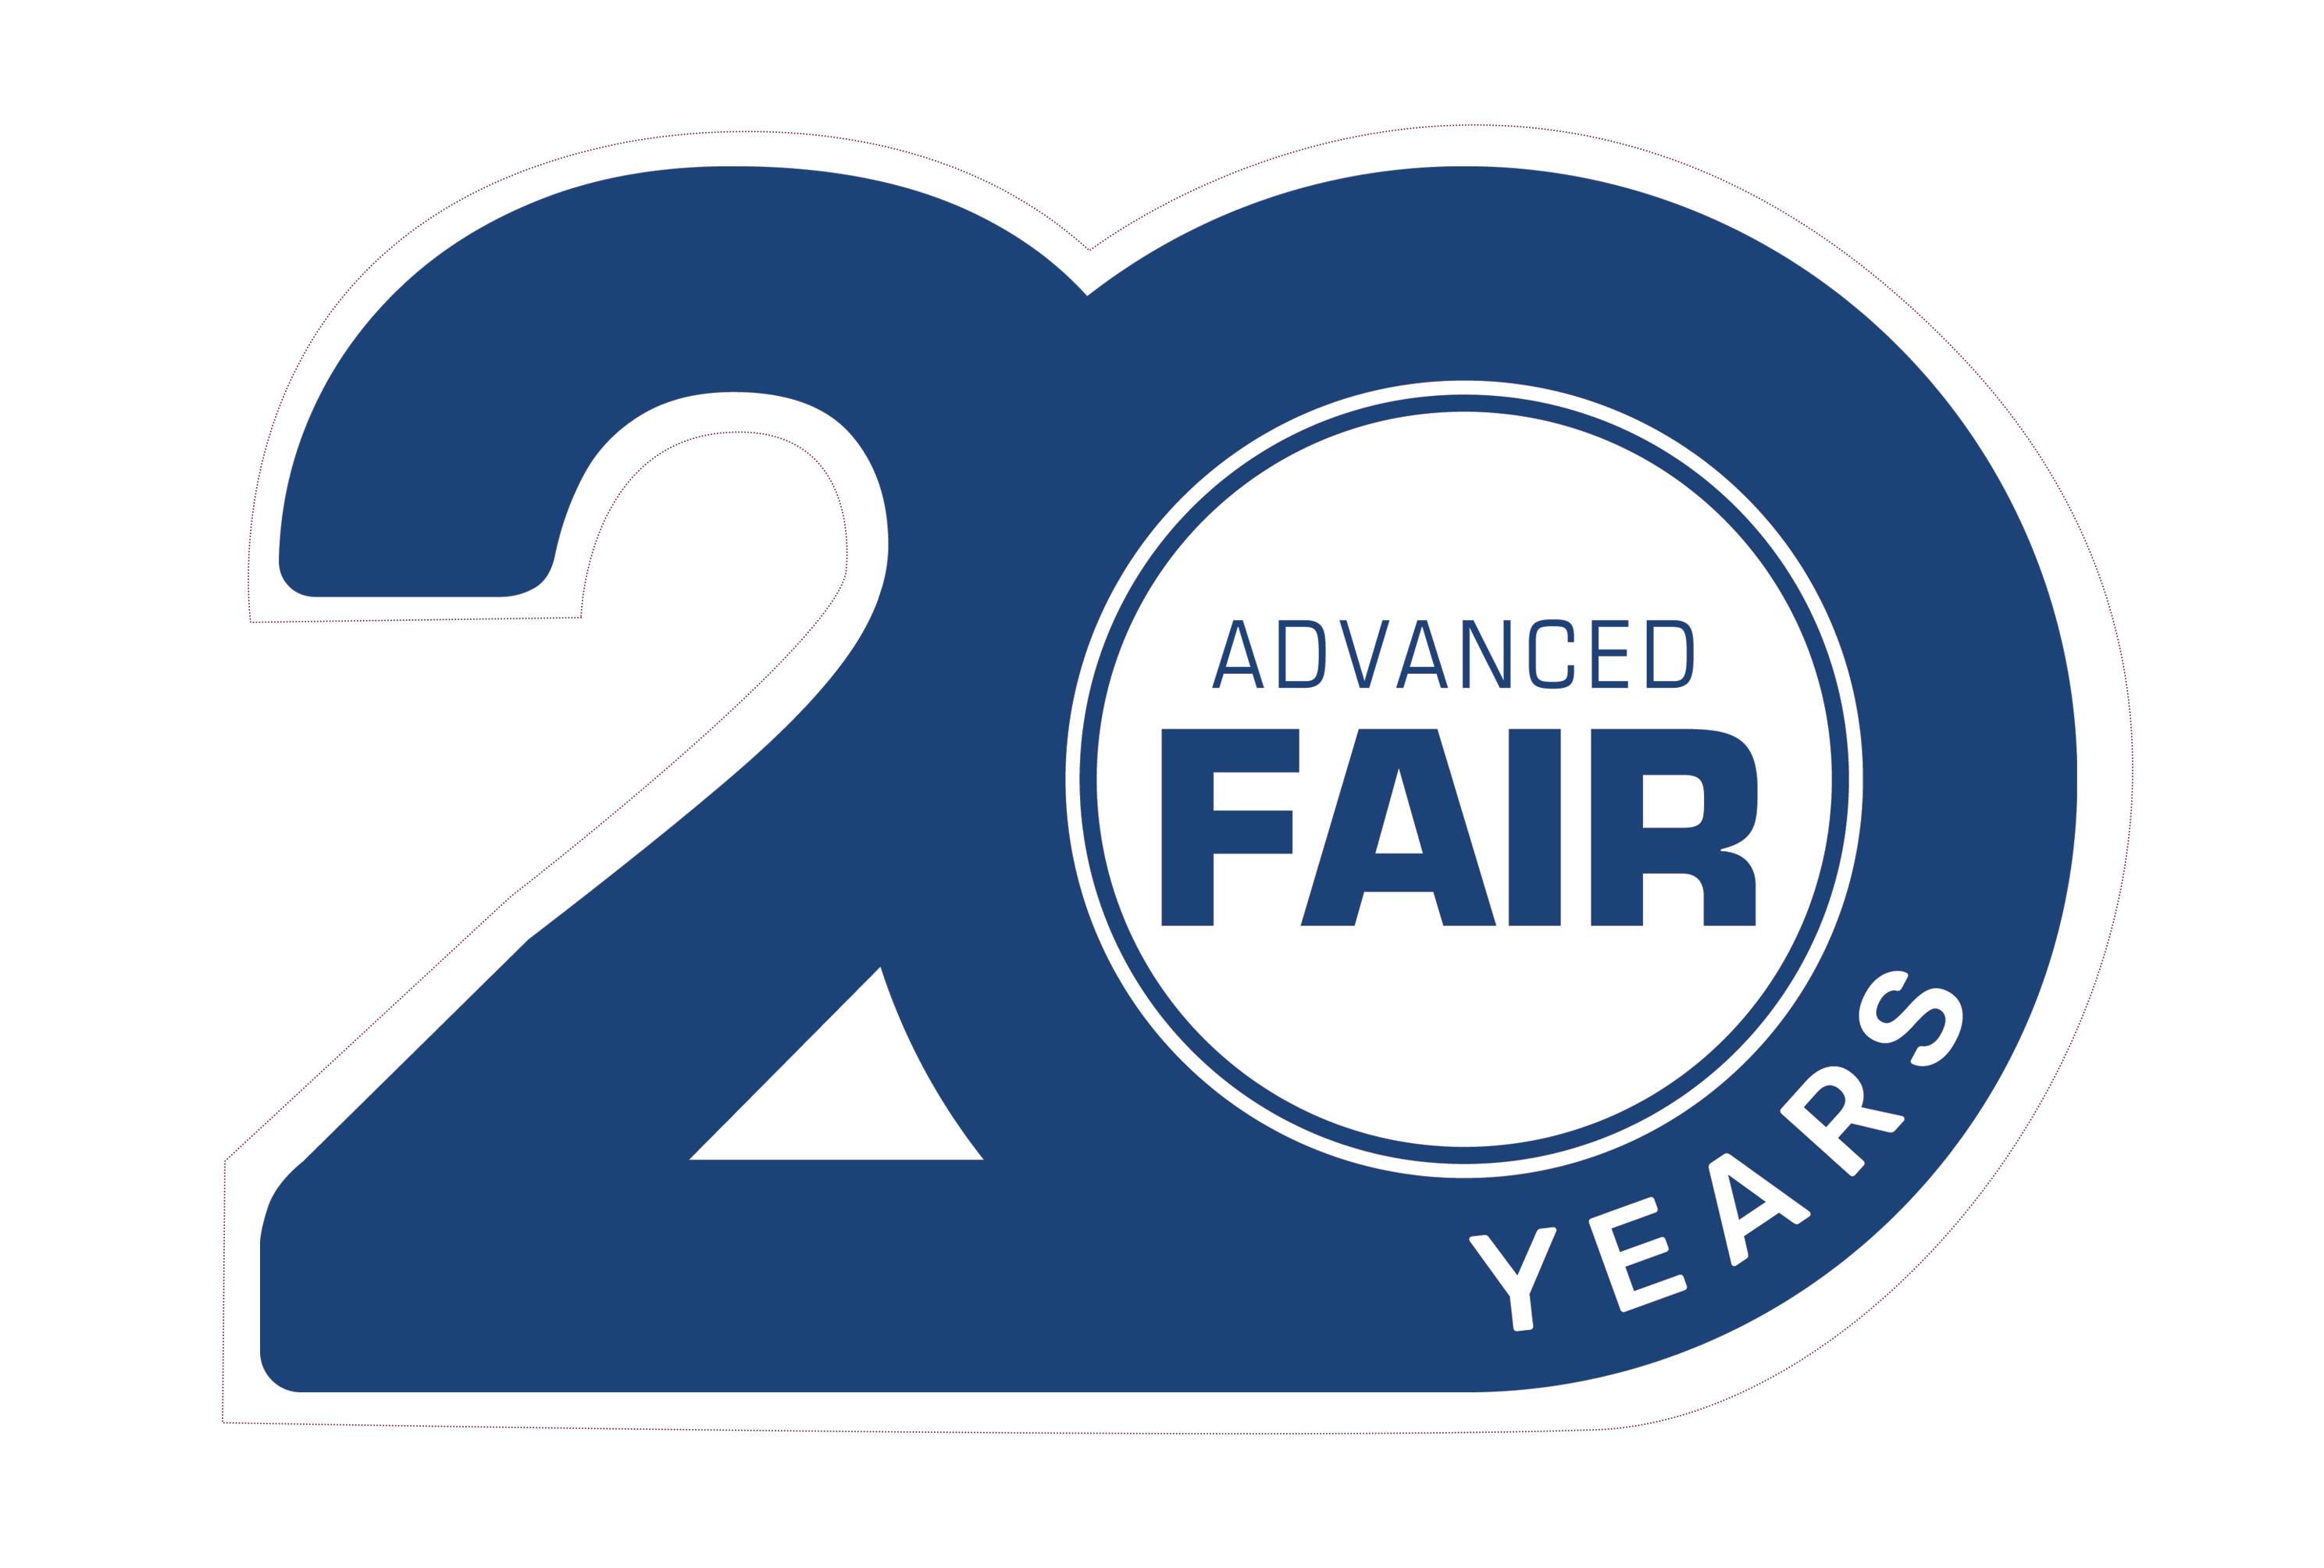 AdvancedFair, votre agence de communication - Passionate about you!